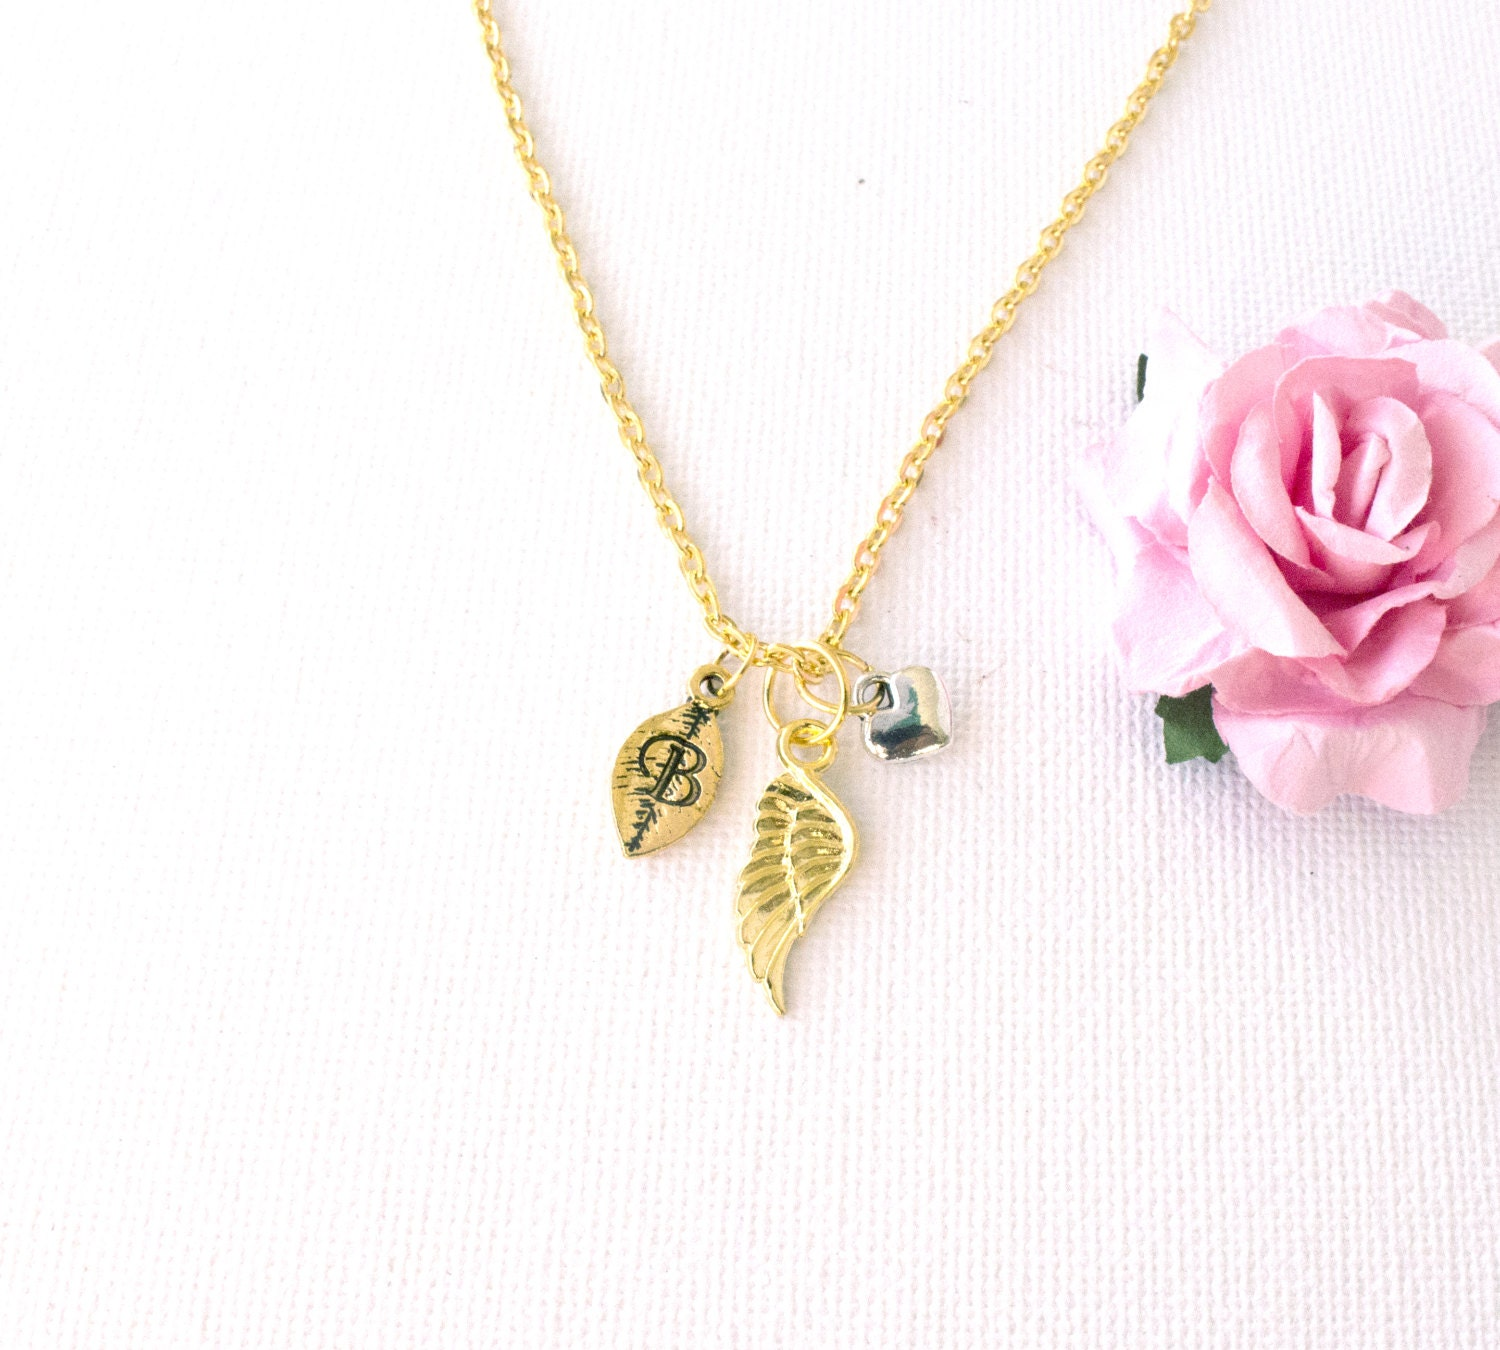 Gold angel wing Necklace gold angel necklace angel jewellery angel Best Friends Gift Idea sisters necklace angel jewellery GAIN0217